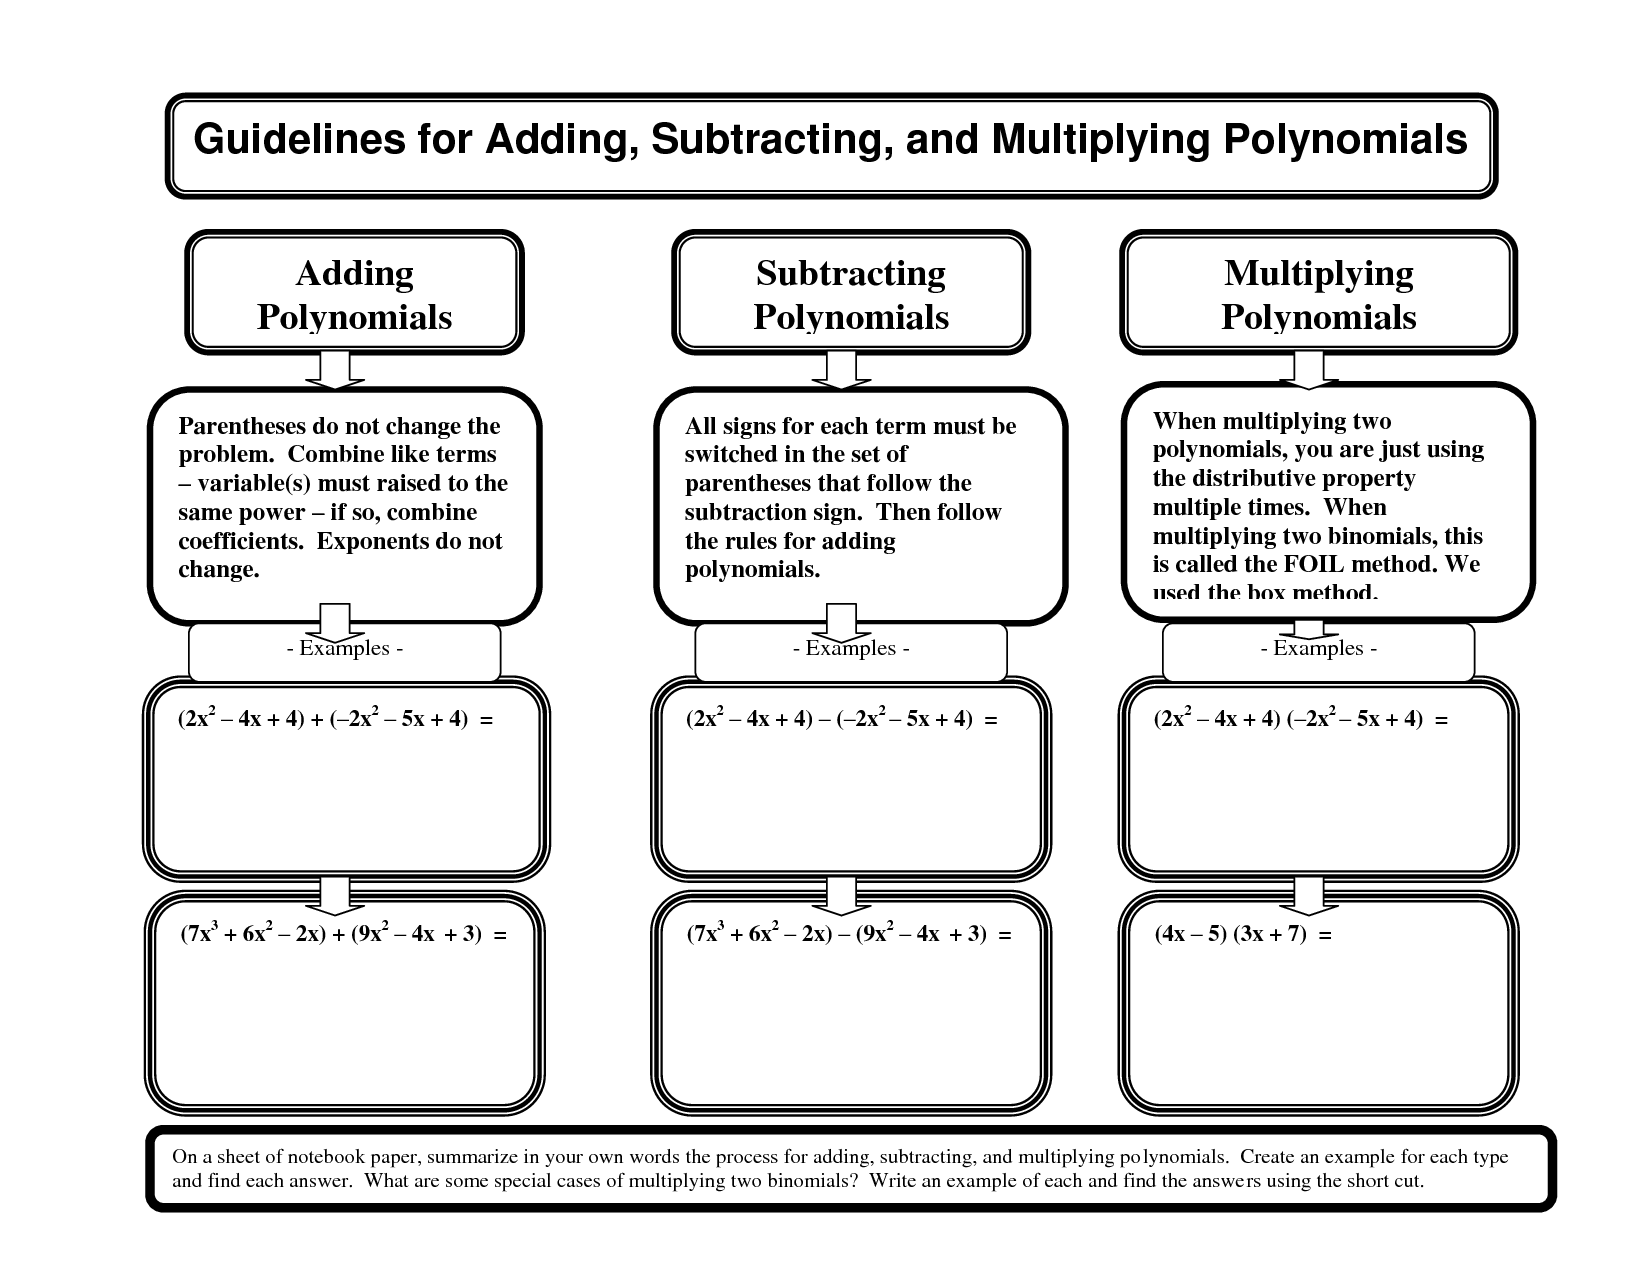 small resolution of polynomial graphic organizer   zz graphic organizer for adding subtracting  polynomials   Polynomials